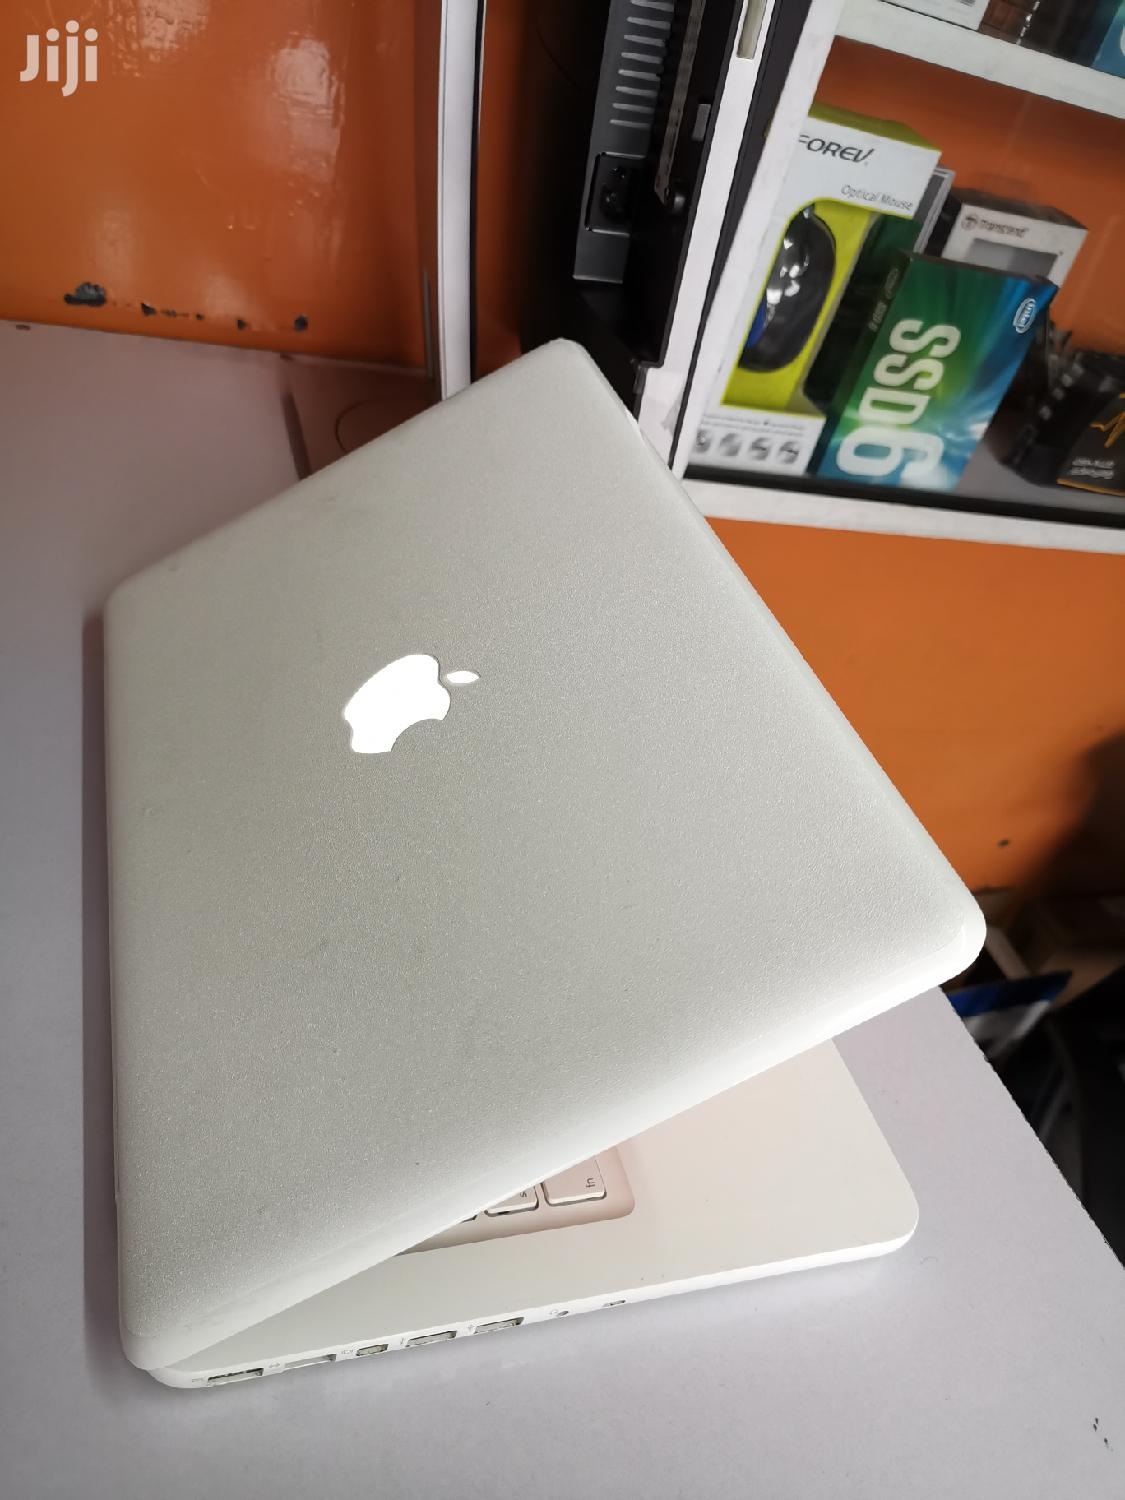 Apple Macbook 13 Inches 500Gb Hdd Core 2Duo 4Gb Ram | Laptops & Computers for sale in Nairobi Central, Nairobi, Kenya